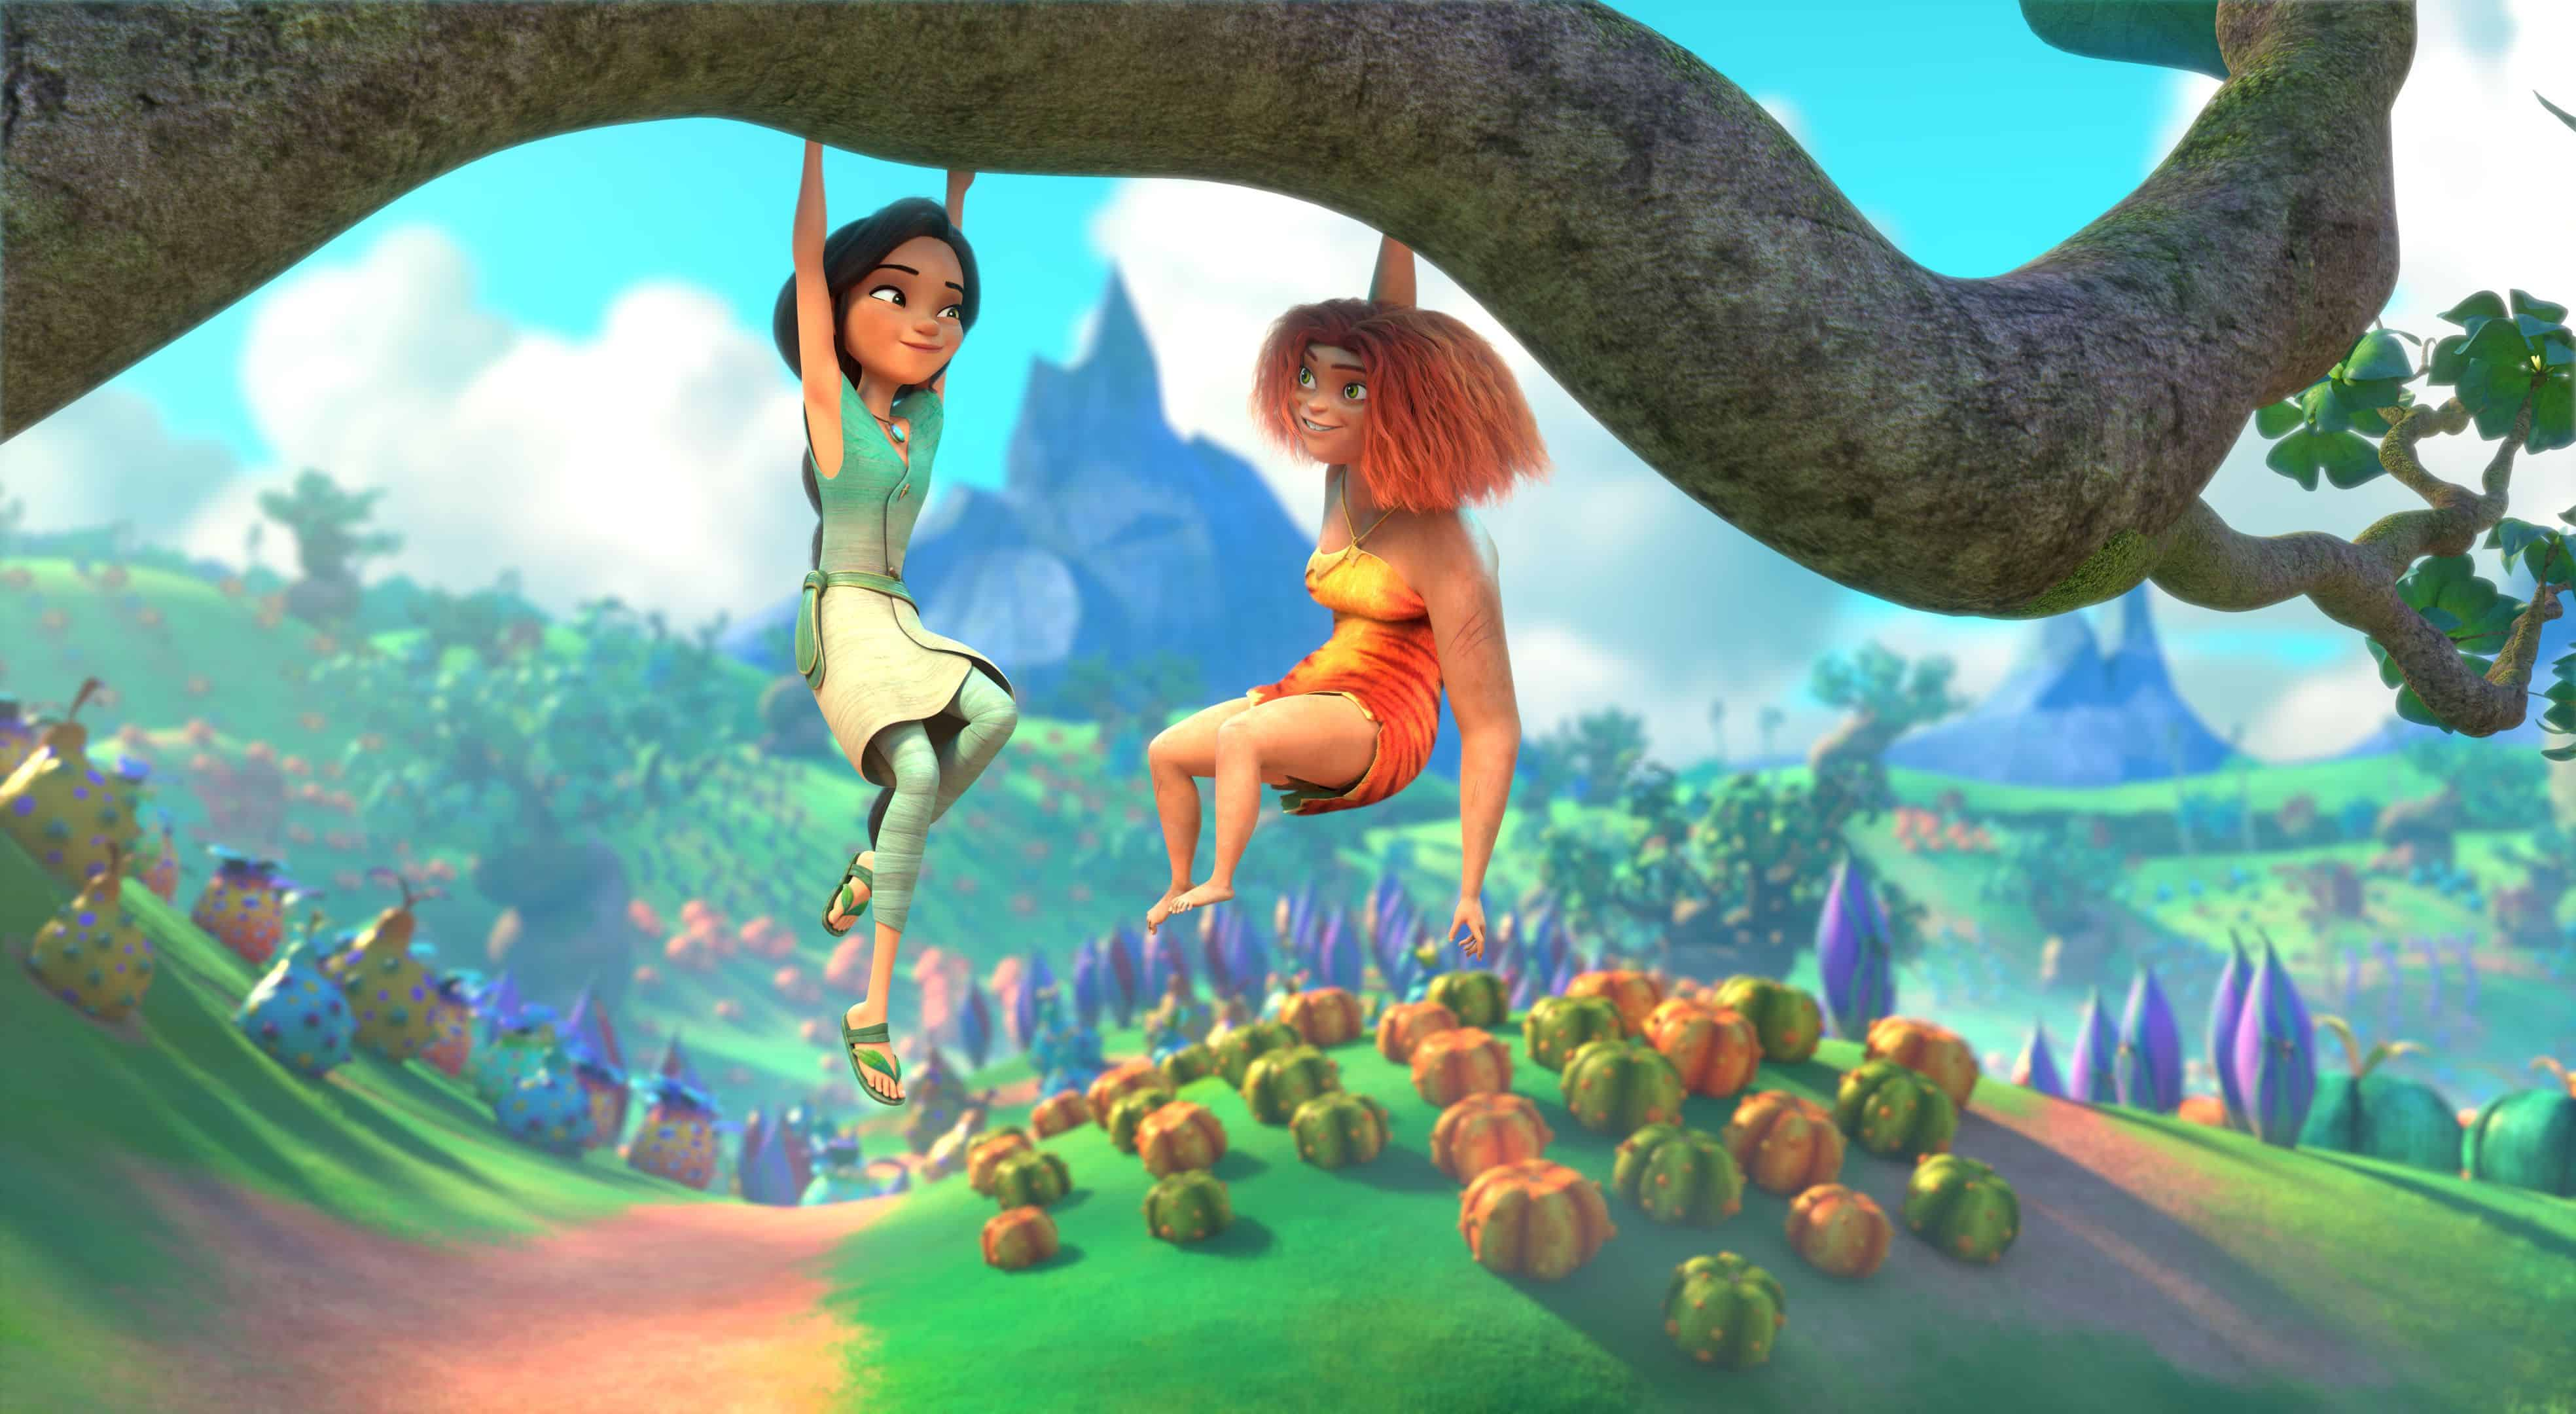 The Croods Family Tree is Coming to Hulu and Peacock